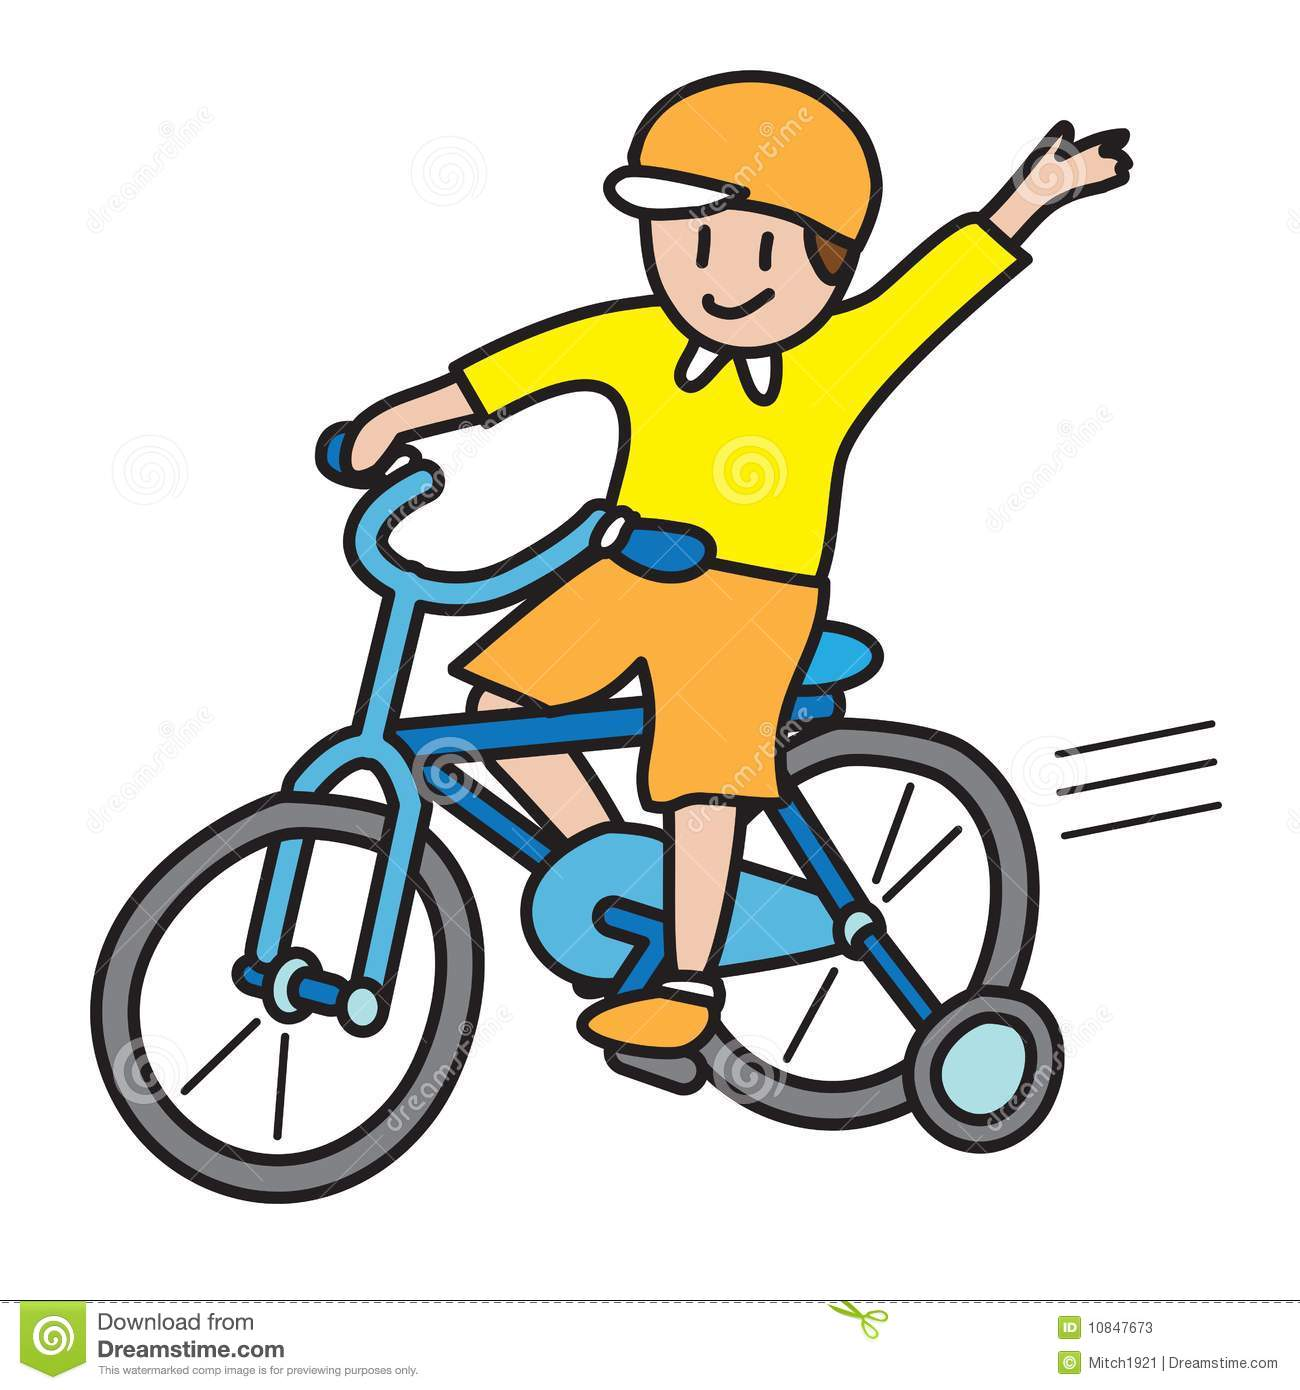 Riding Bike Rider Clipart.